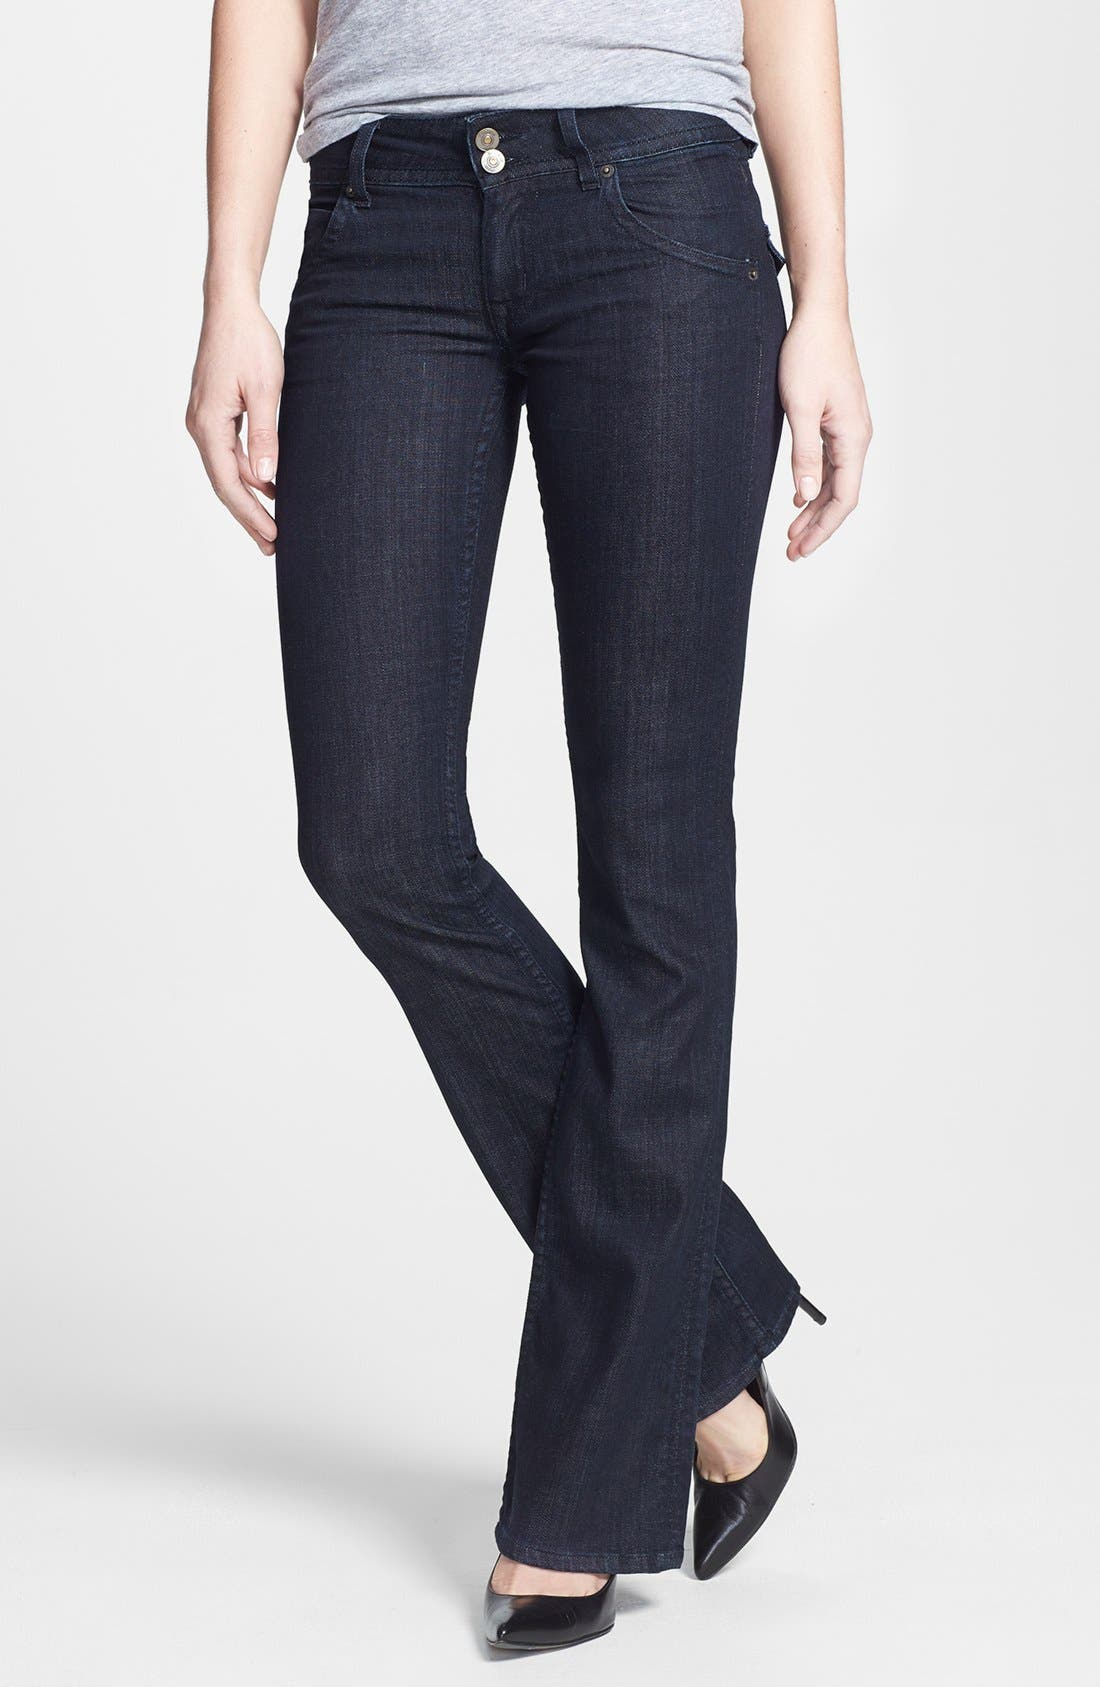 Alternate Image 1 Selected - Hudson Jeans Mid Rise Bootcut Jeans (Northern Star)